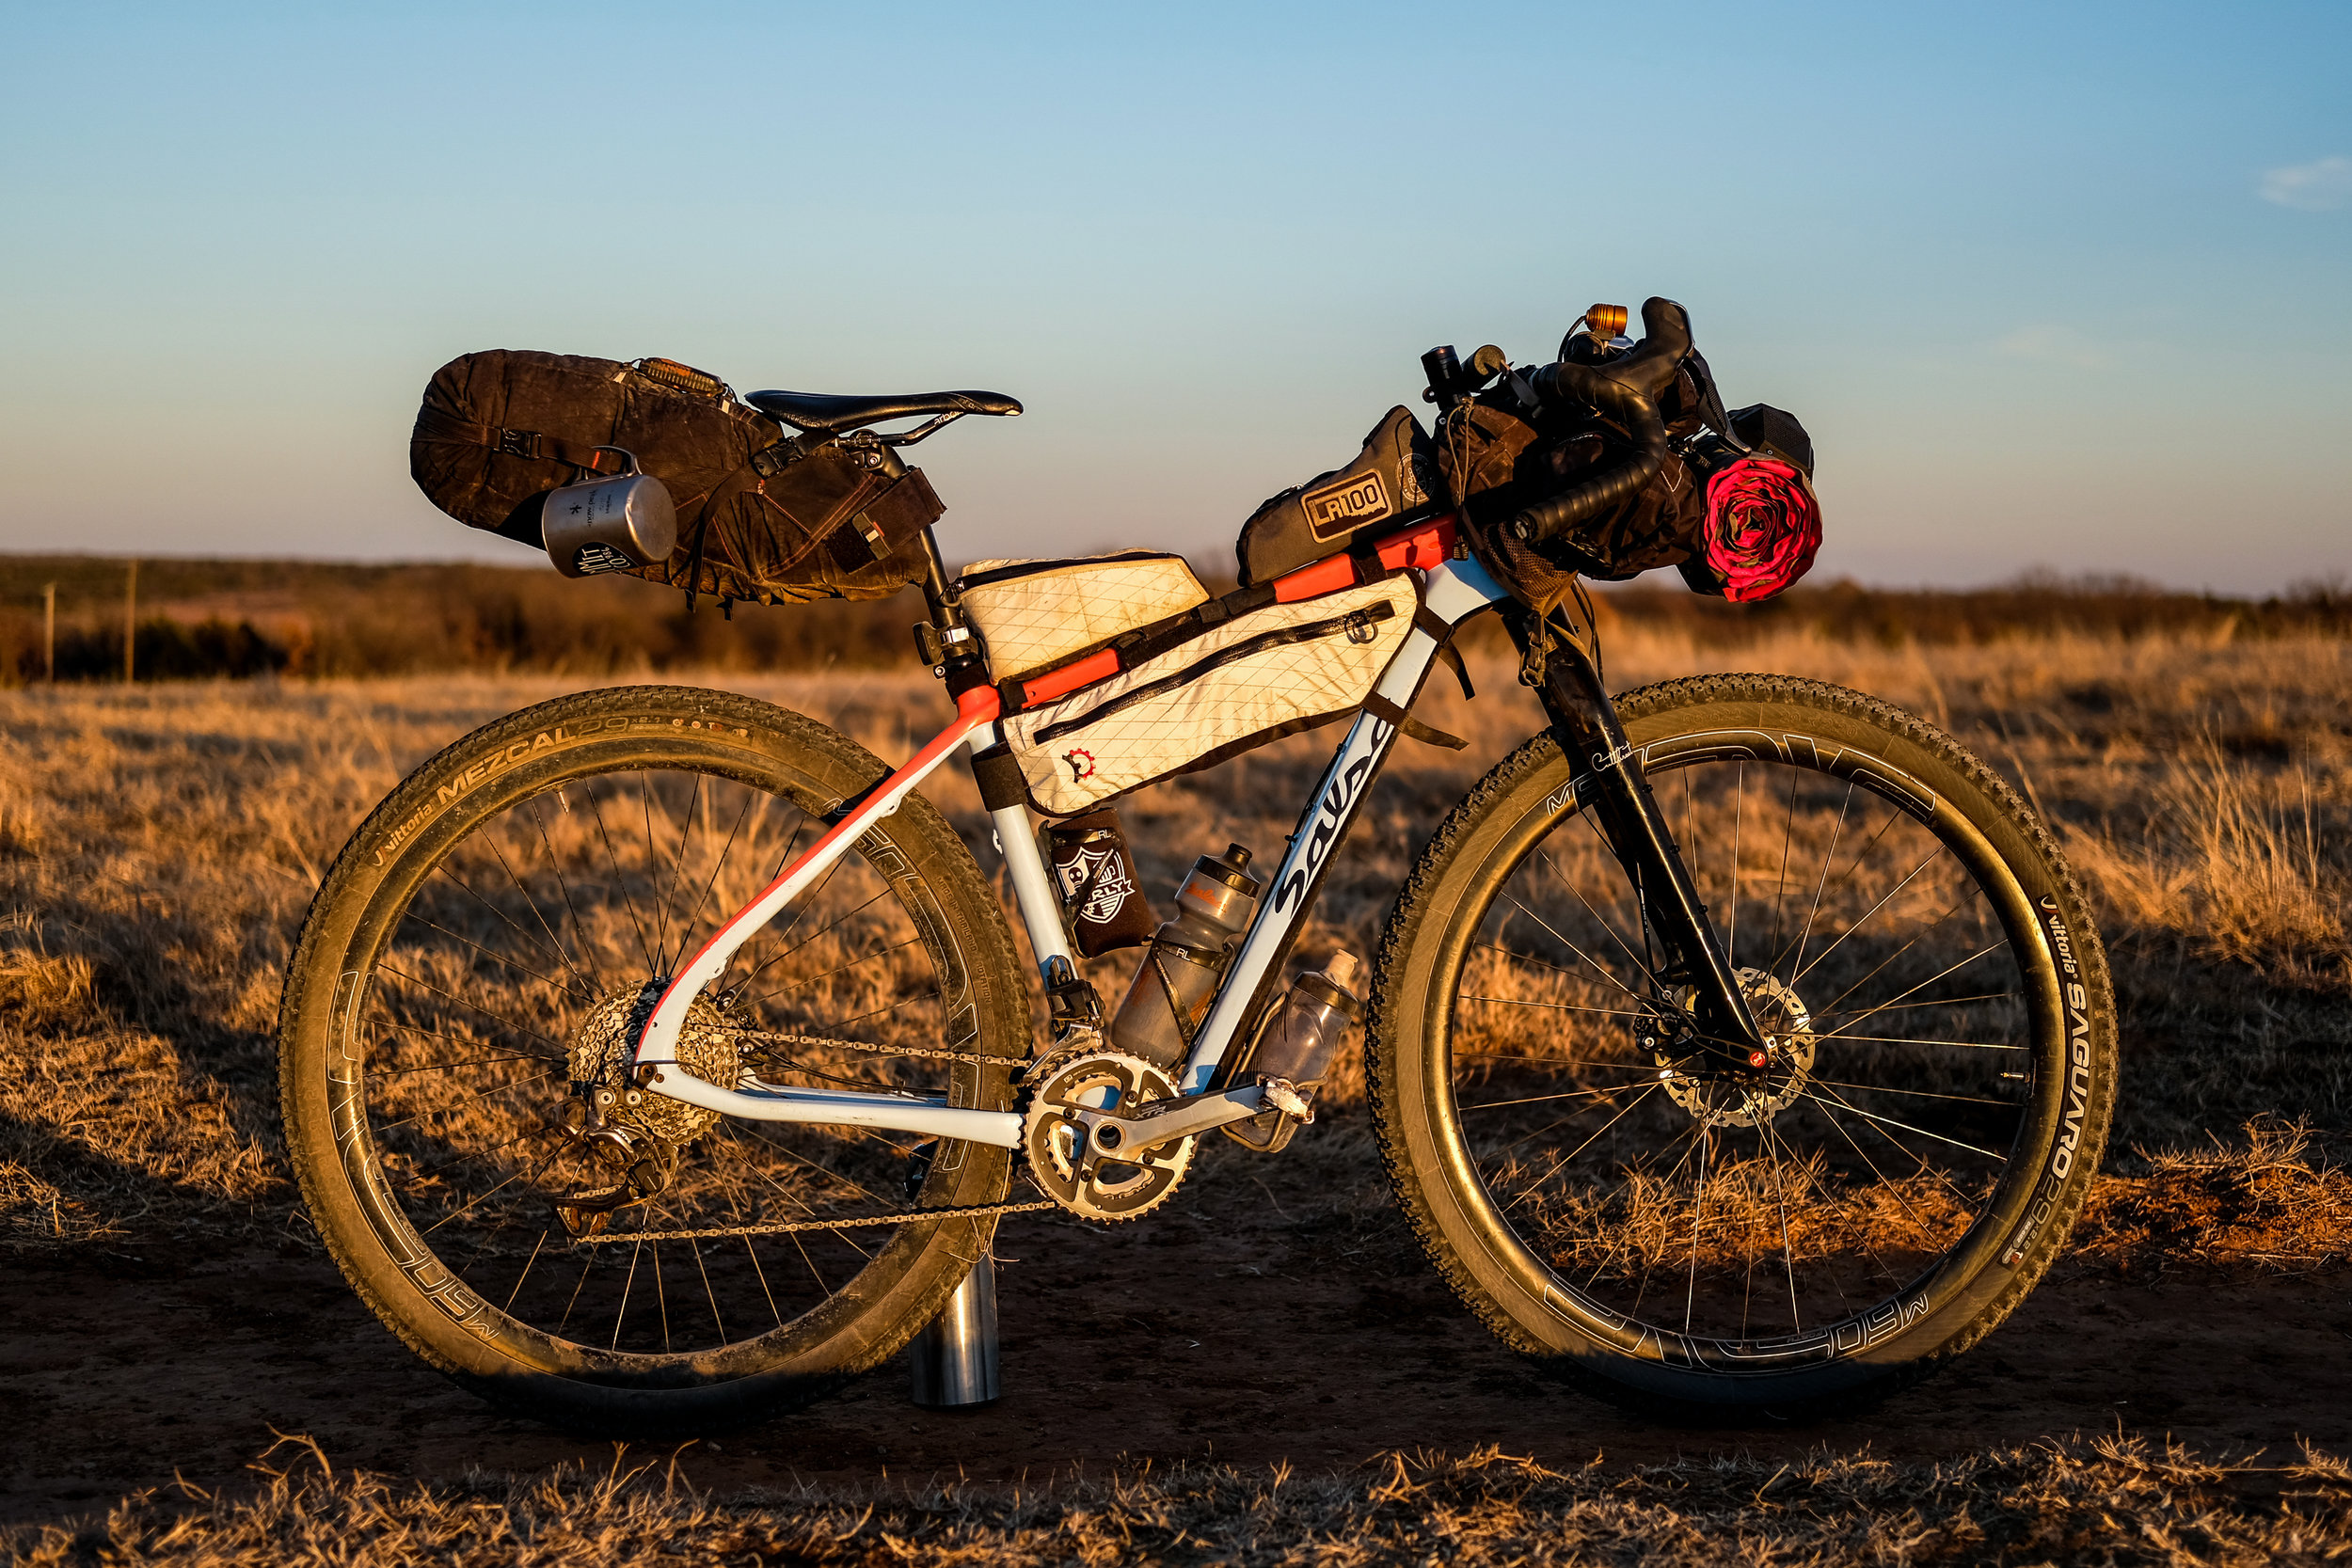 @unlearnpavement Bobby Wintle's Glamp-Mobile Salsa Cycles Cutthroat.